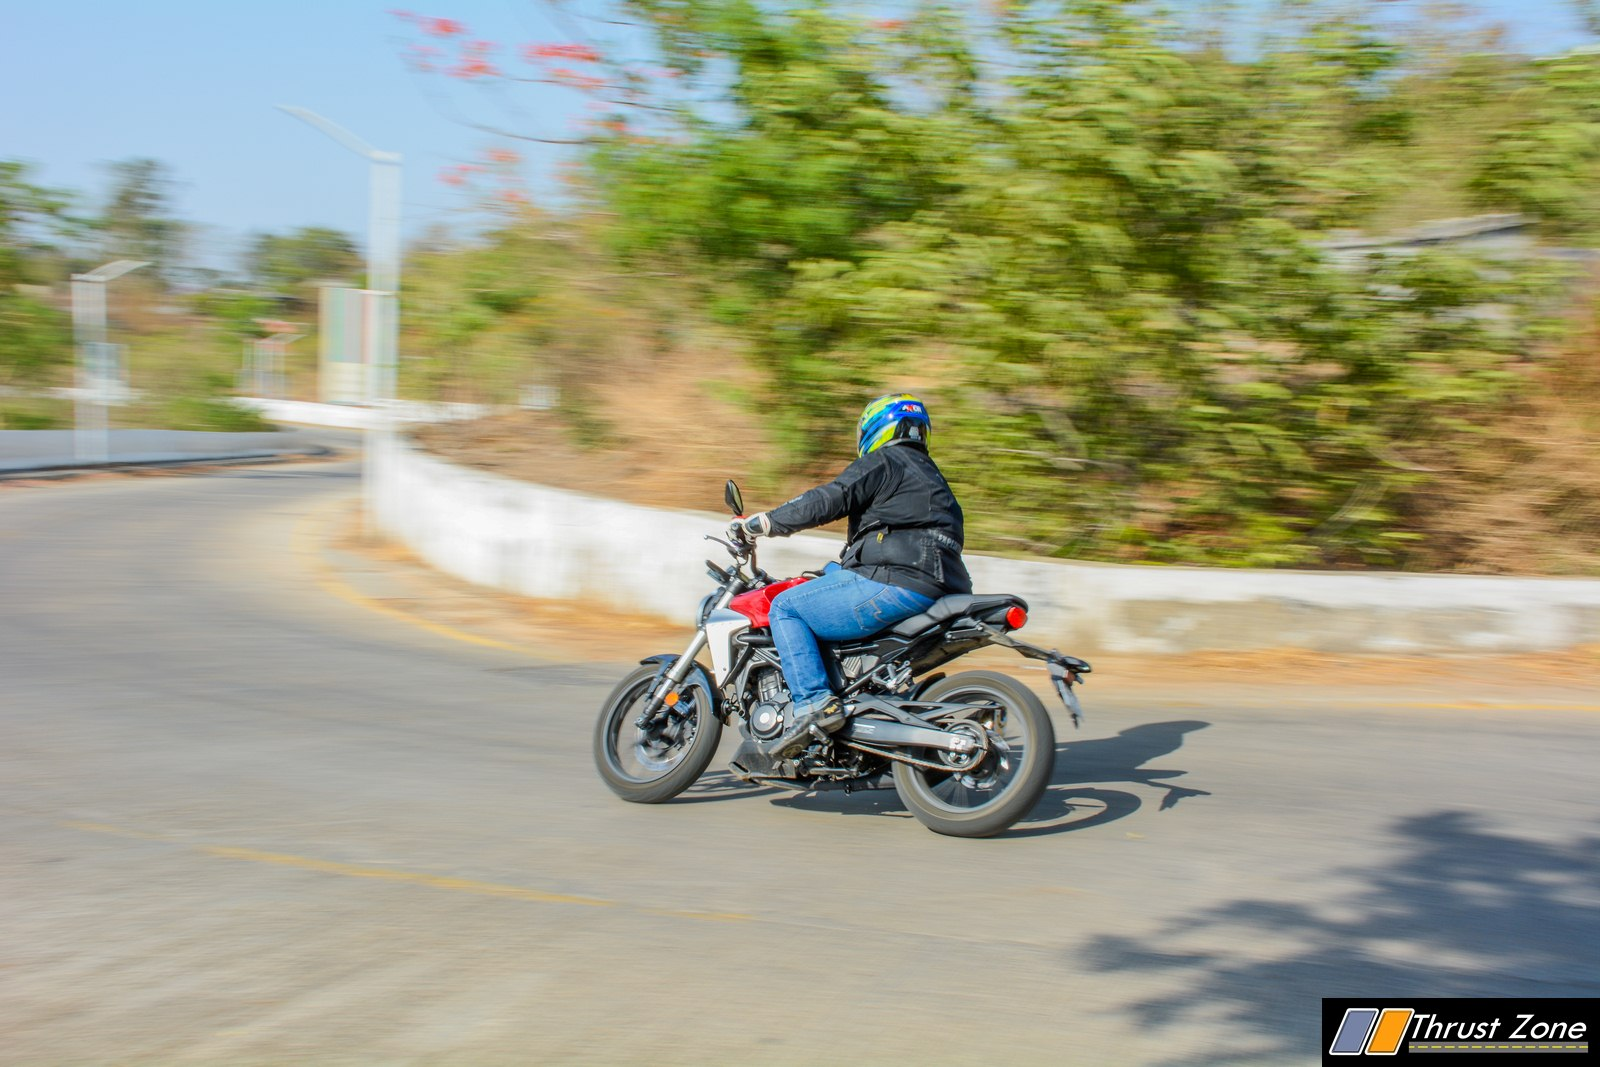 https://www.thrustzone.com/wp-content/uploads/2019/06/2019-Honda-CB300R-Review-India-2.jpg